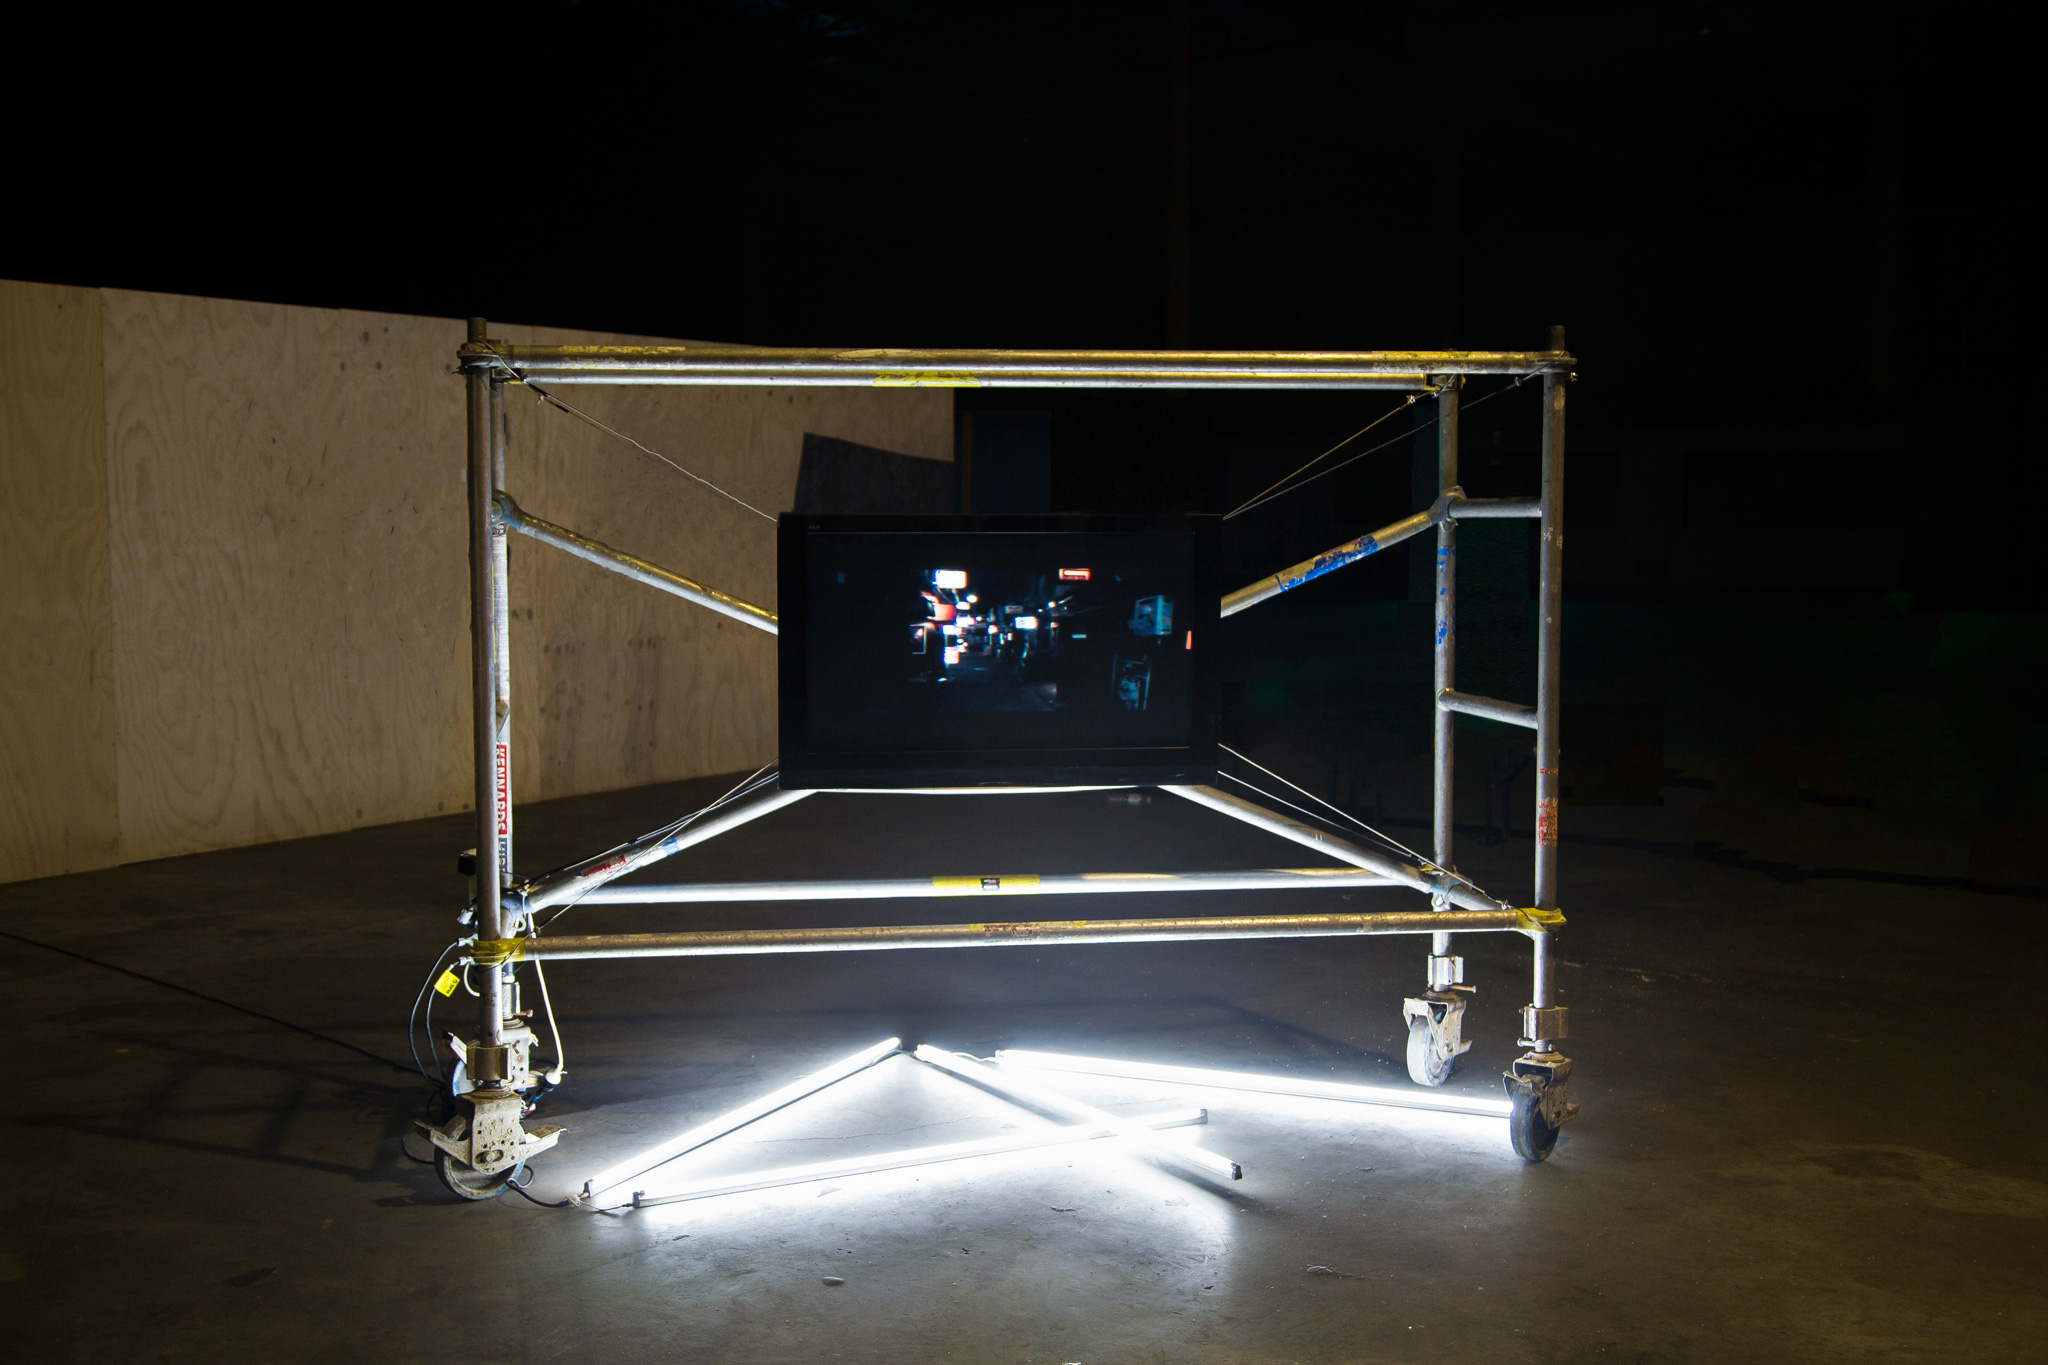 <p><i>Metropolis</i>, 2016, Single channel HD video, Continuous Loop 2:40 mins. LCD Screen 1200mm x 800mm, Scaffolding, Metal Rope, Fluro Bar. Installation view, Sydney Fringe Festival, 2017. </p>